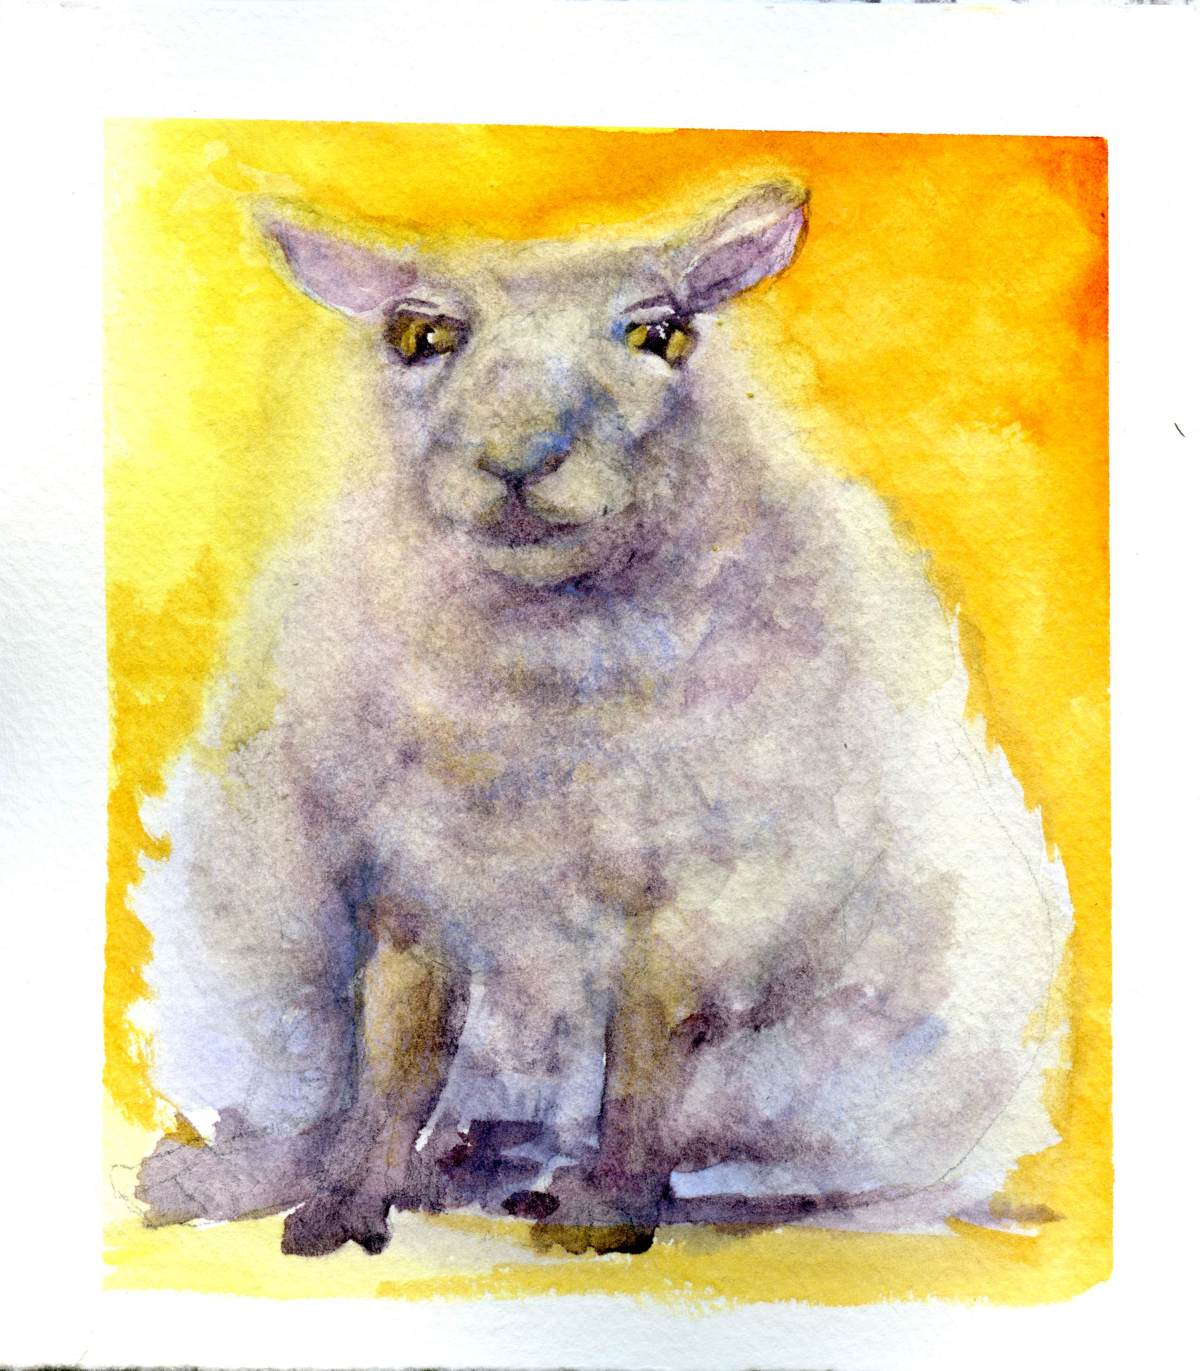 Sitting Down – Counting Sheep#6